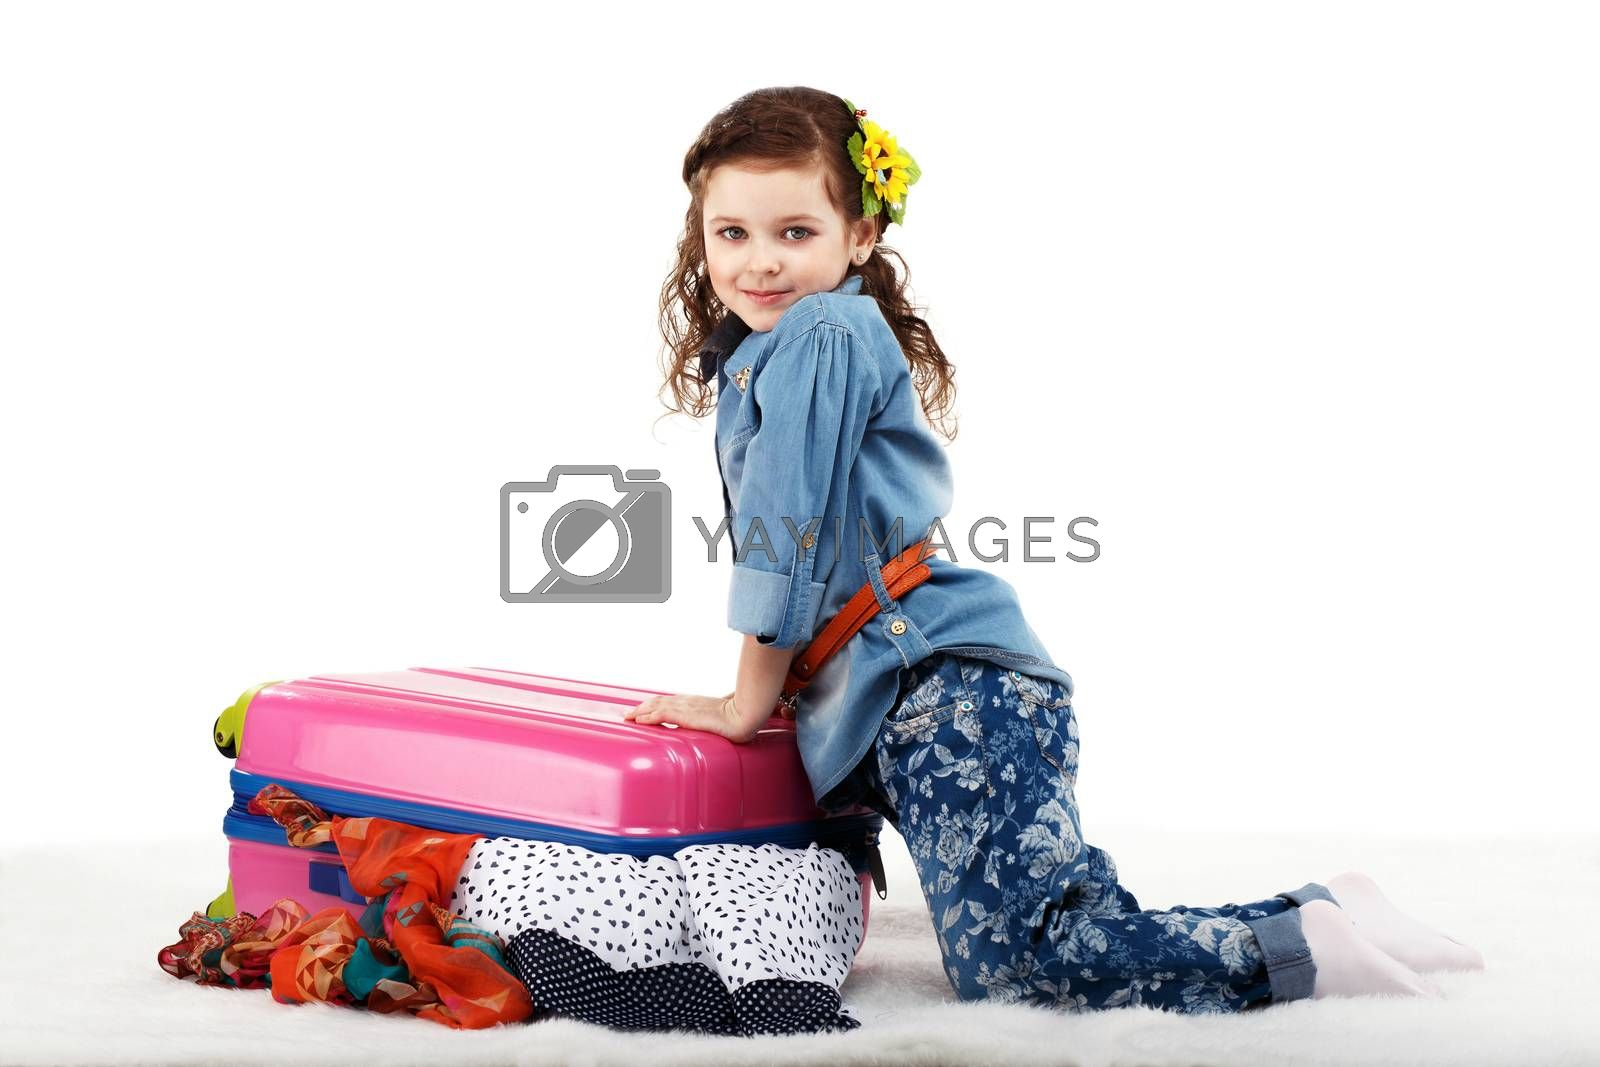 Fashionable little girl closes the suitcase with clothes isolated on white background